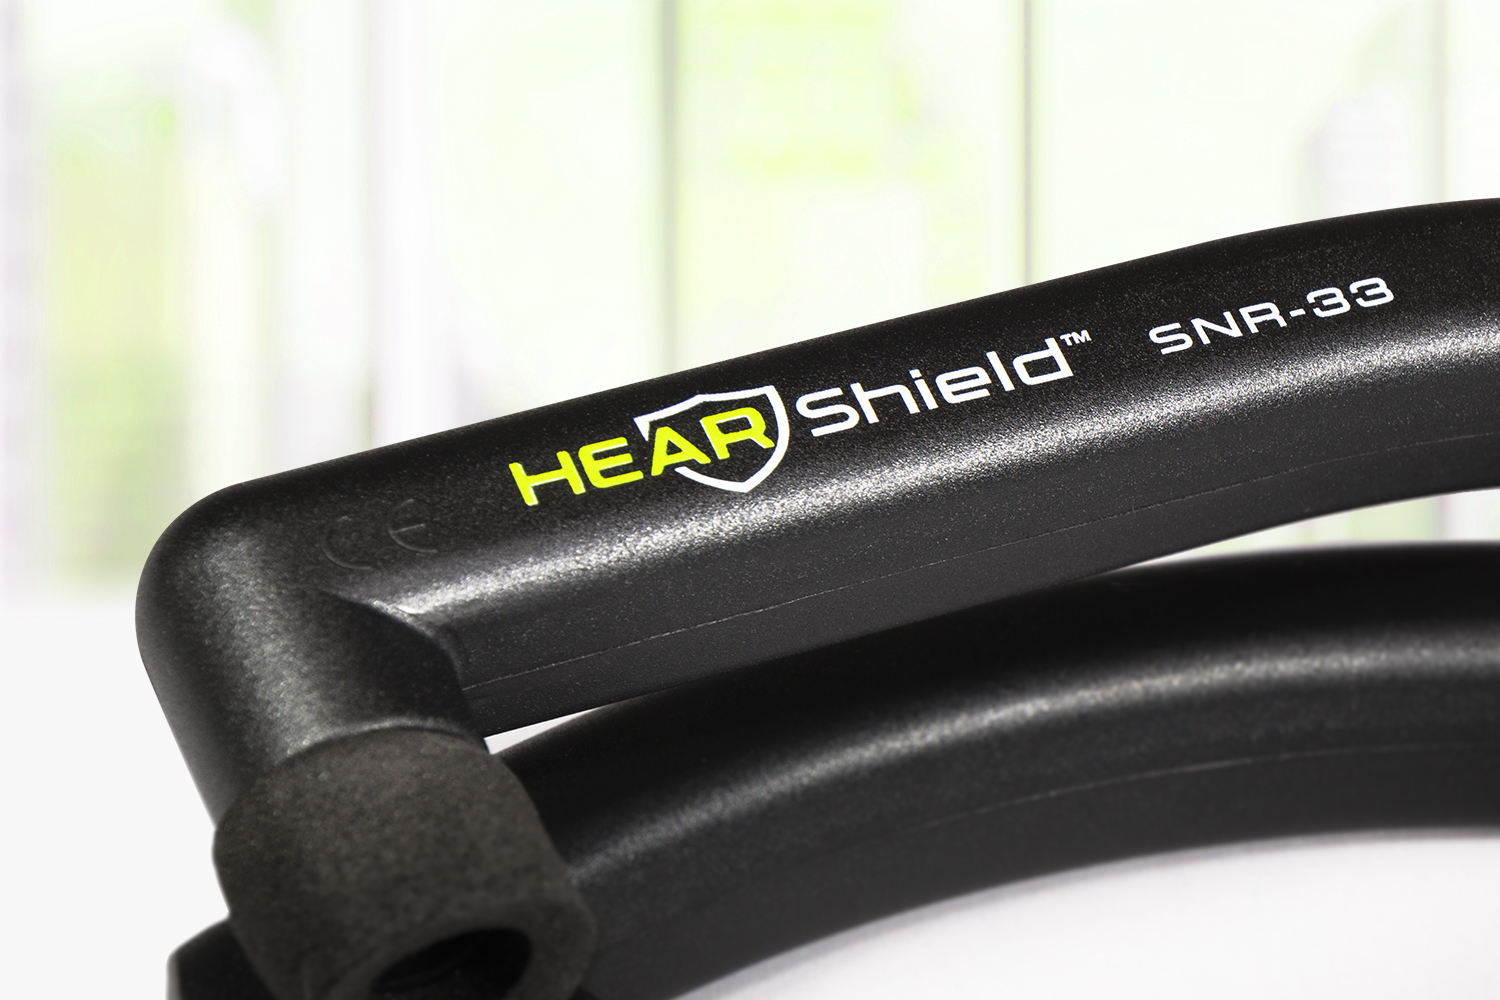 HearShield Logo and Brand Design